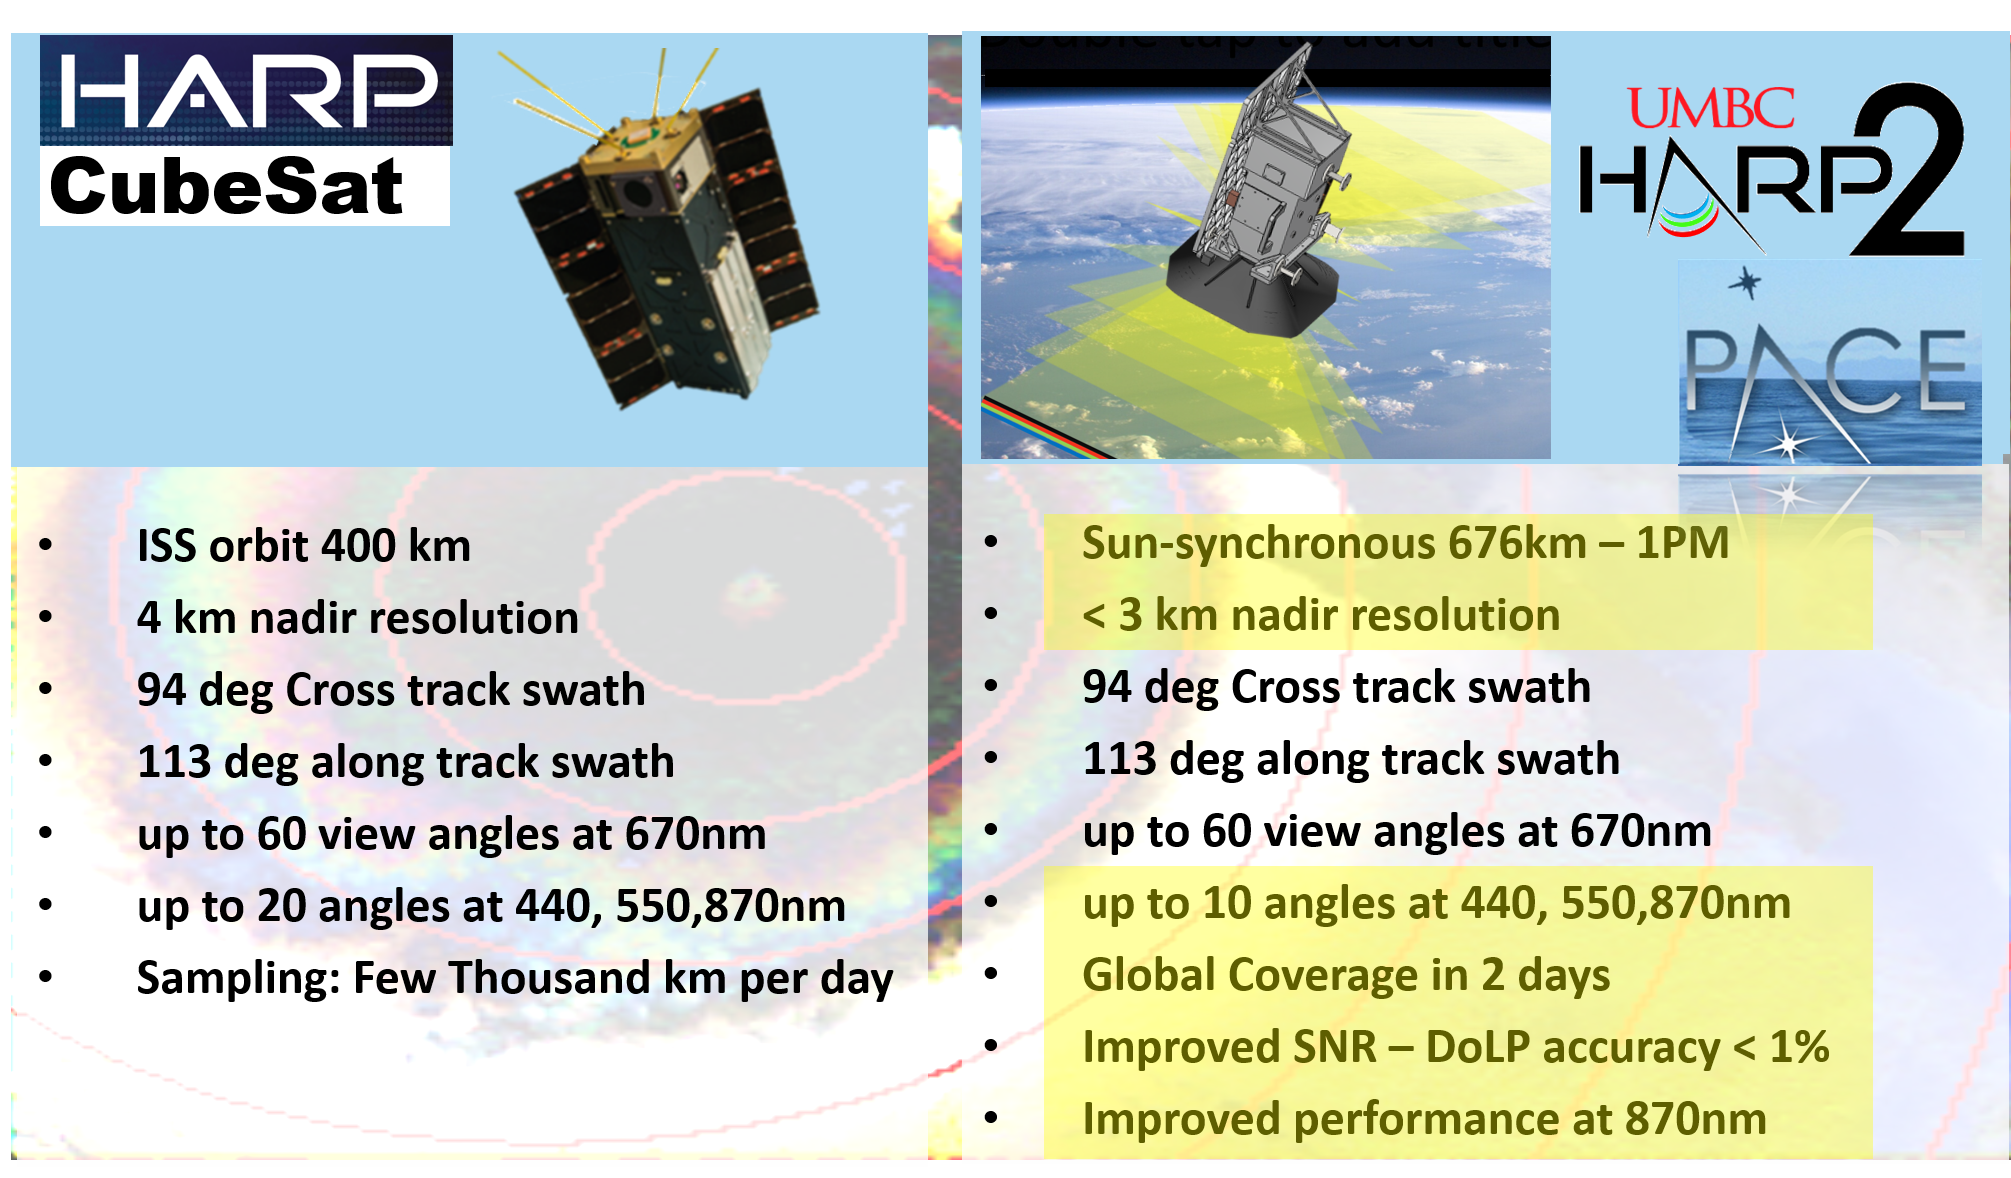 HARP2 on PACE - Earth and Space Institute - UMBC